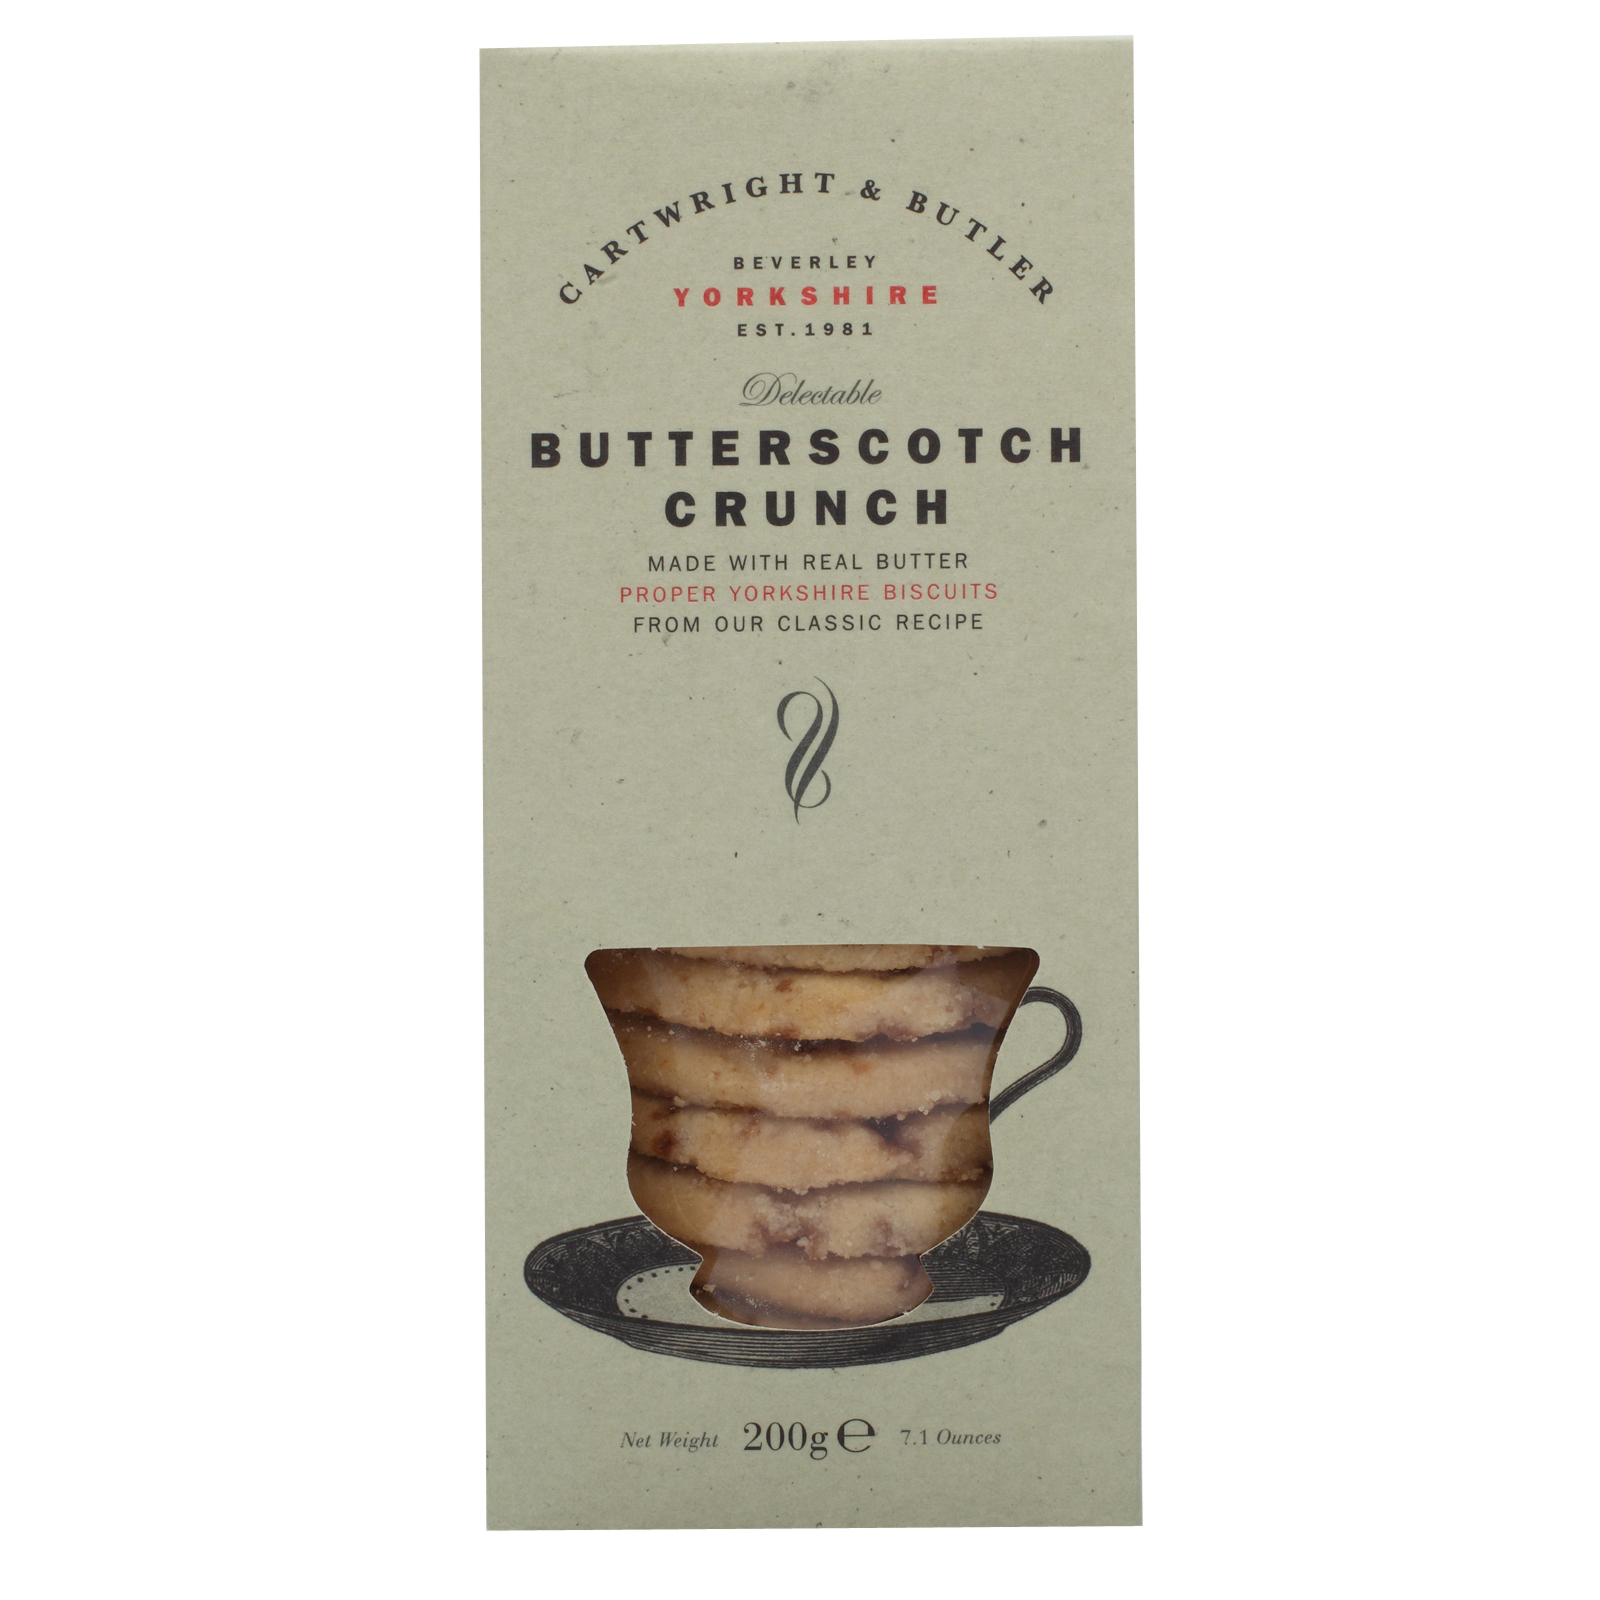 Butterscotch Crunch by Cartwright & Butler